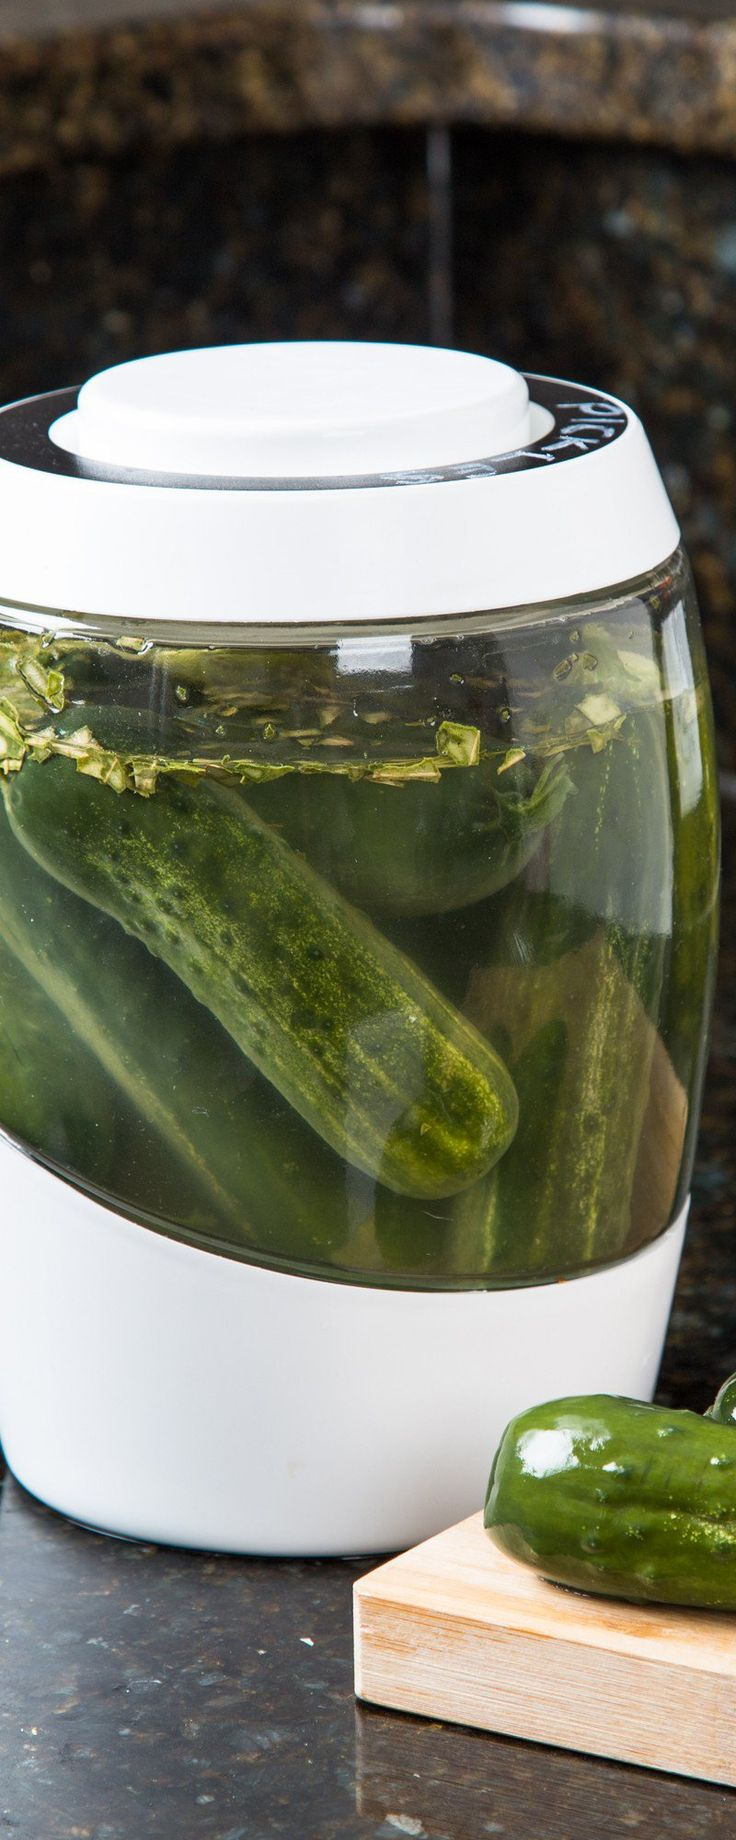 Mortier Pilon's home fermentation crock, discovered by The Grommet, keeps air out but lets gases escape. Ferment your own nutrient-rich foods, in style.